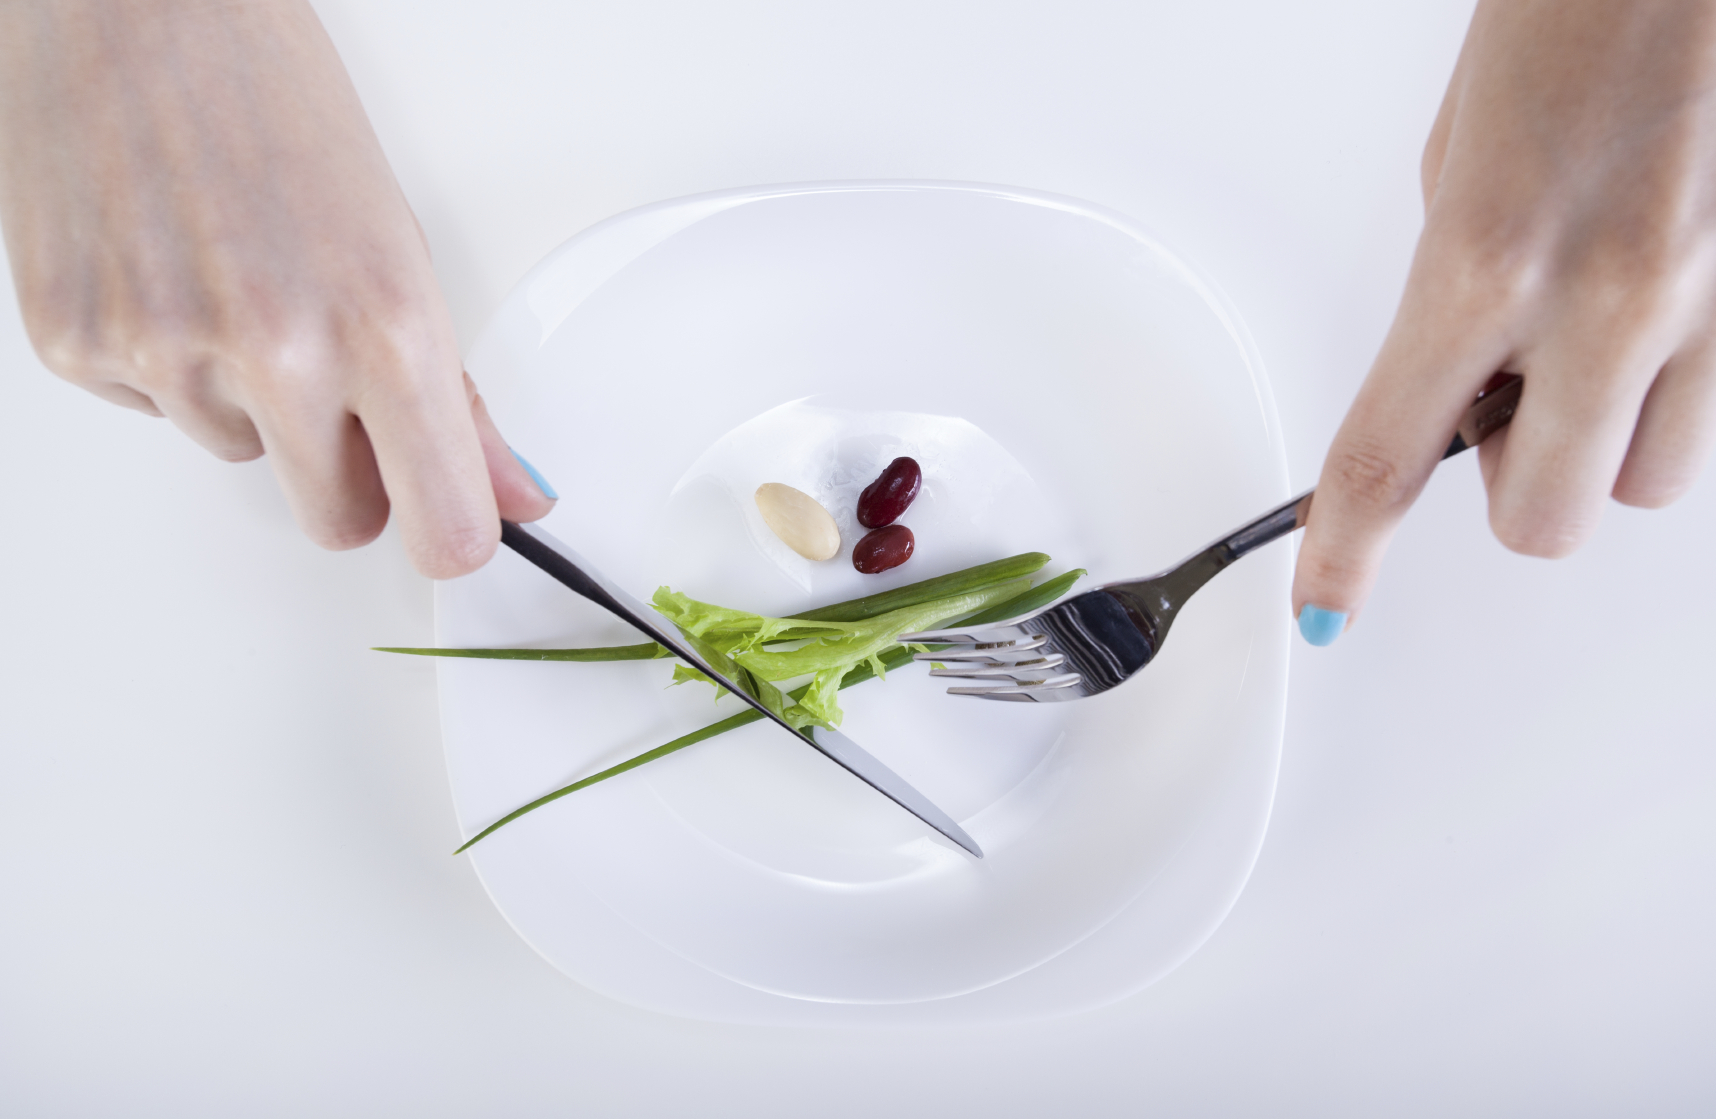 Researchers at Purdue University have discovered that eating more of this can take the hunger pangs out of dieting.